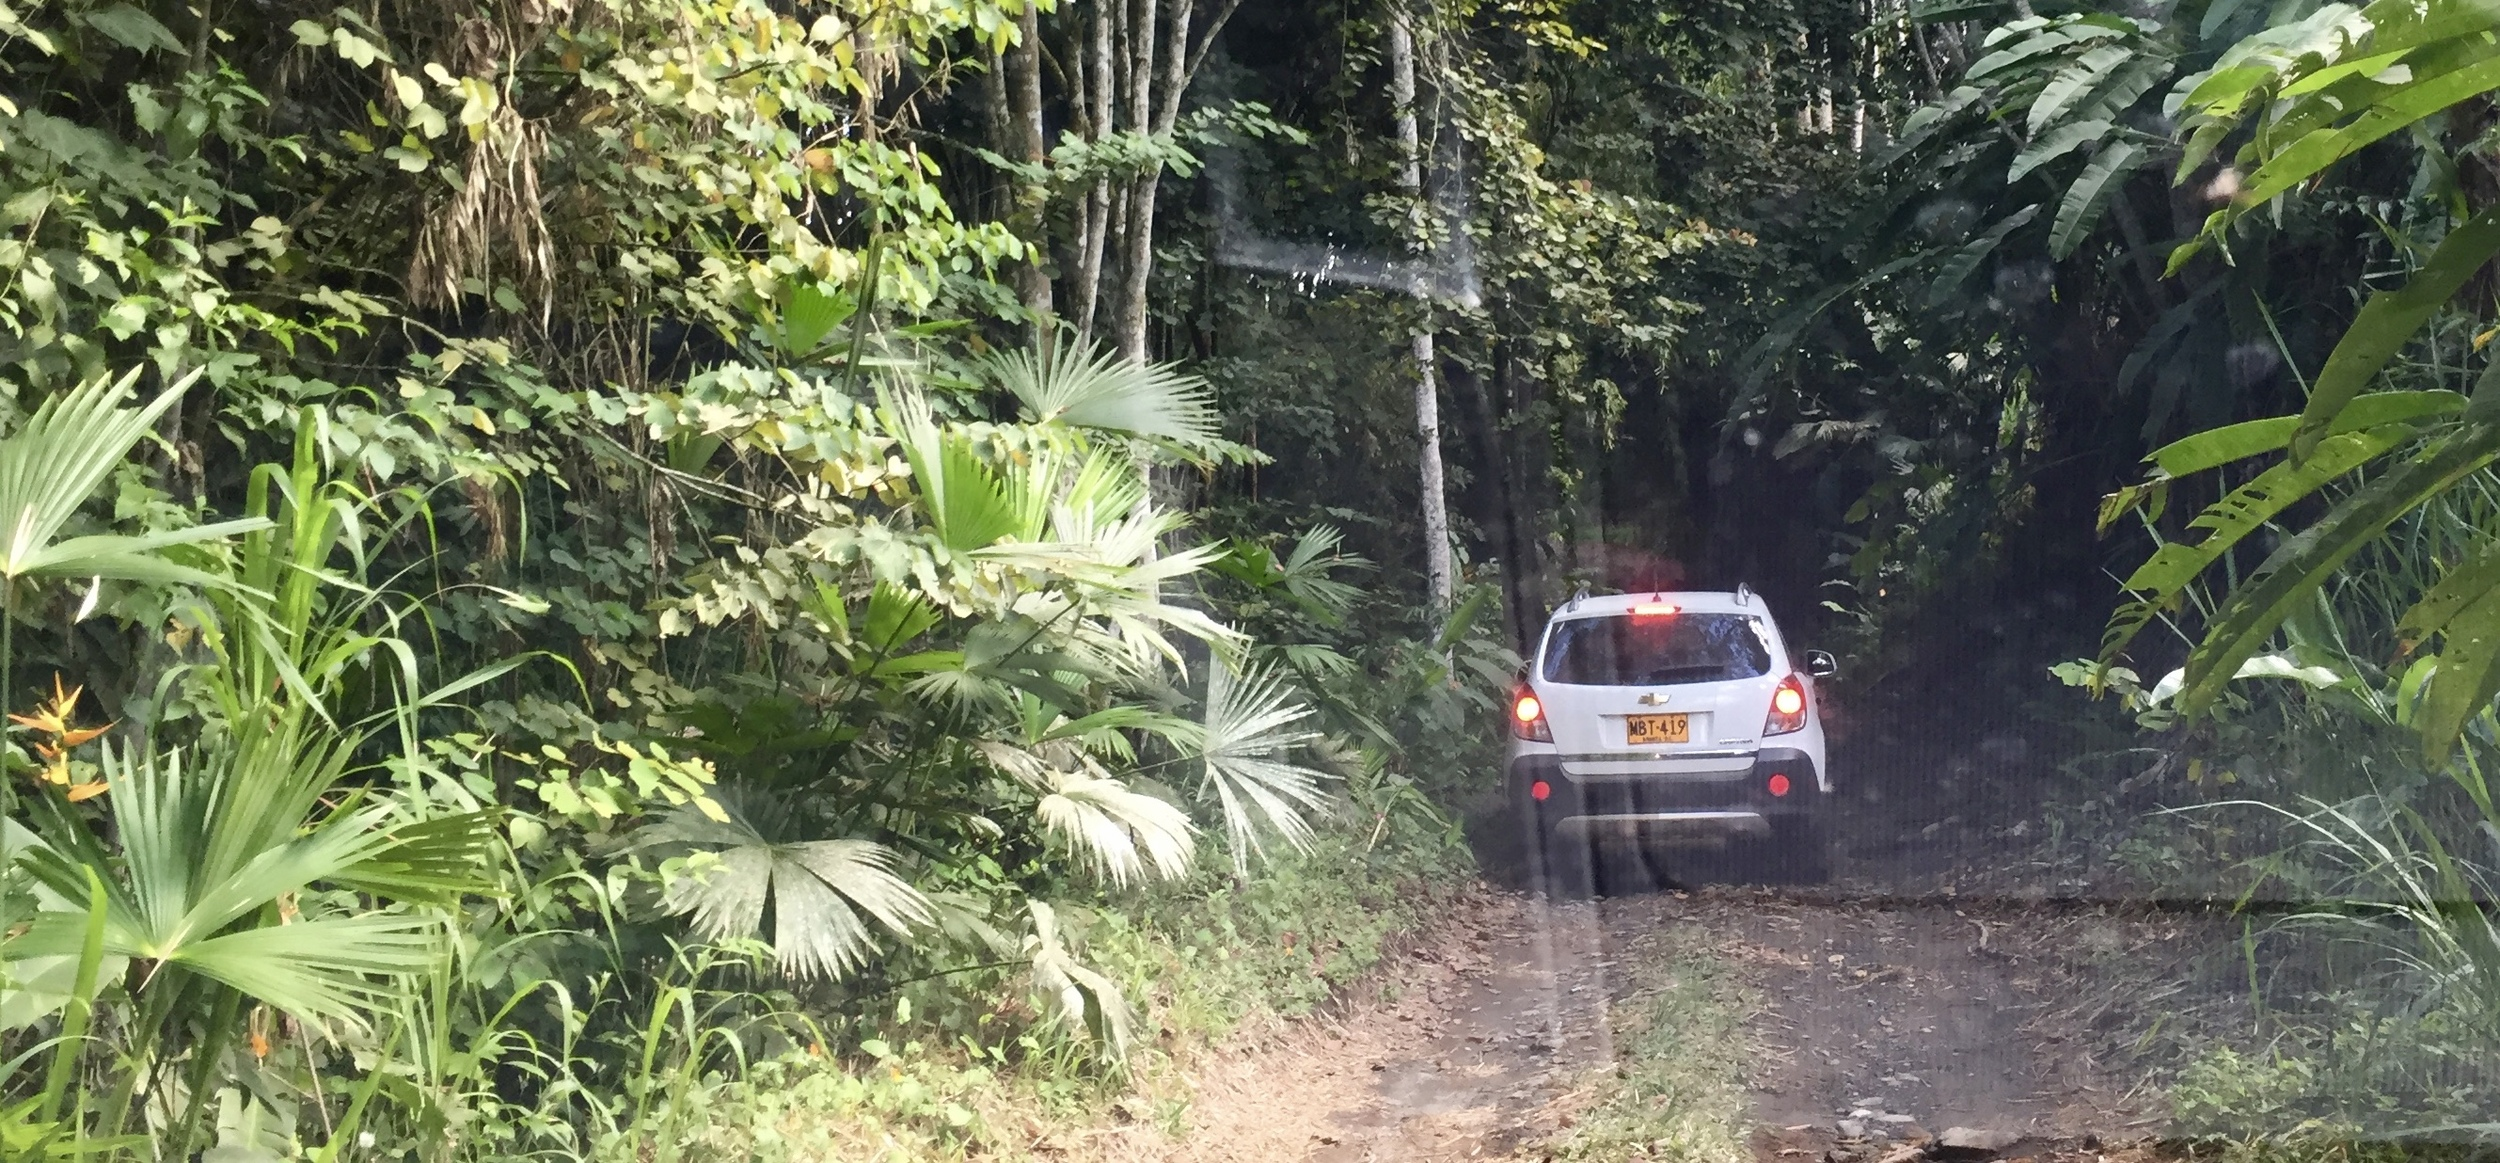 Ten minutes after leaving the airport, we make our way on a country road to a family members Finca.